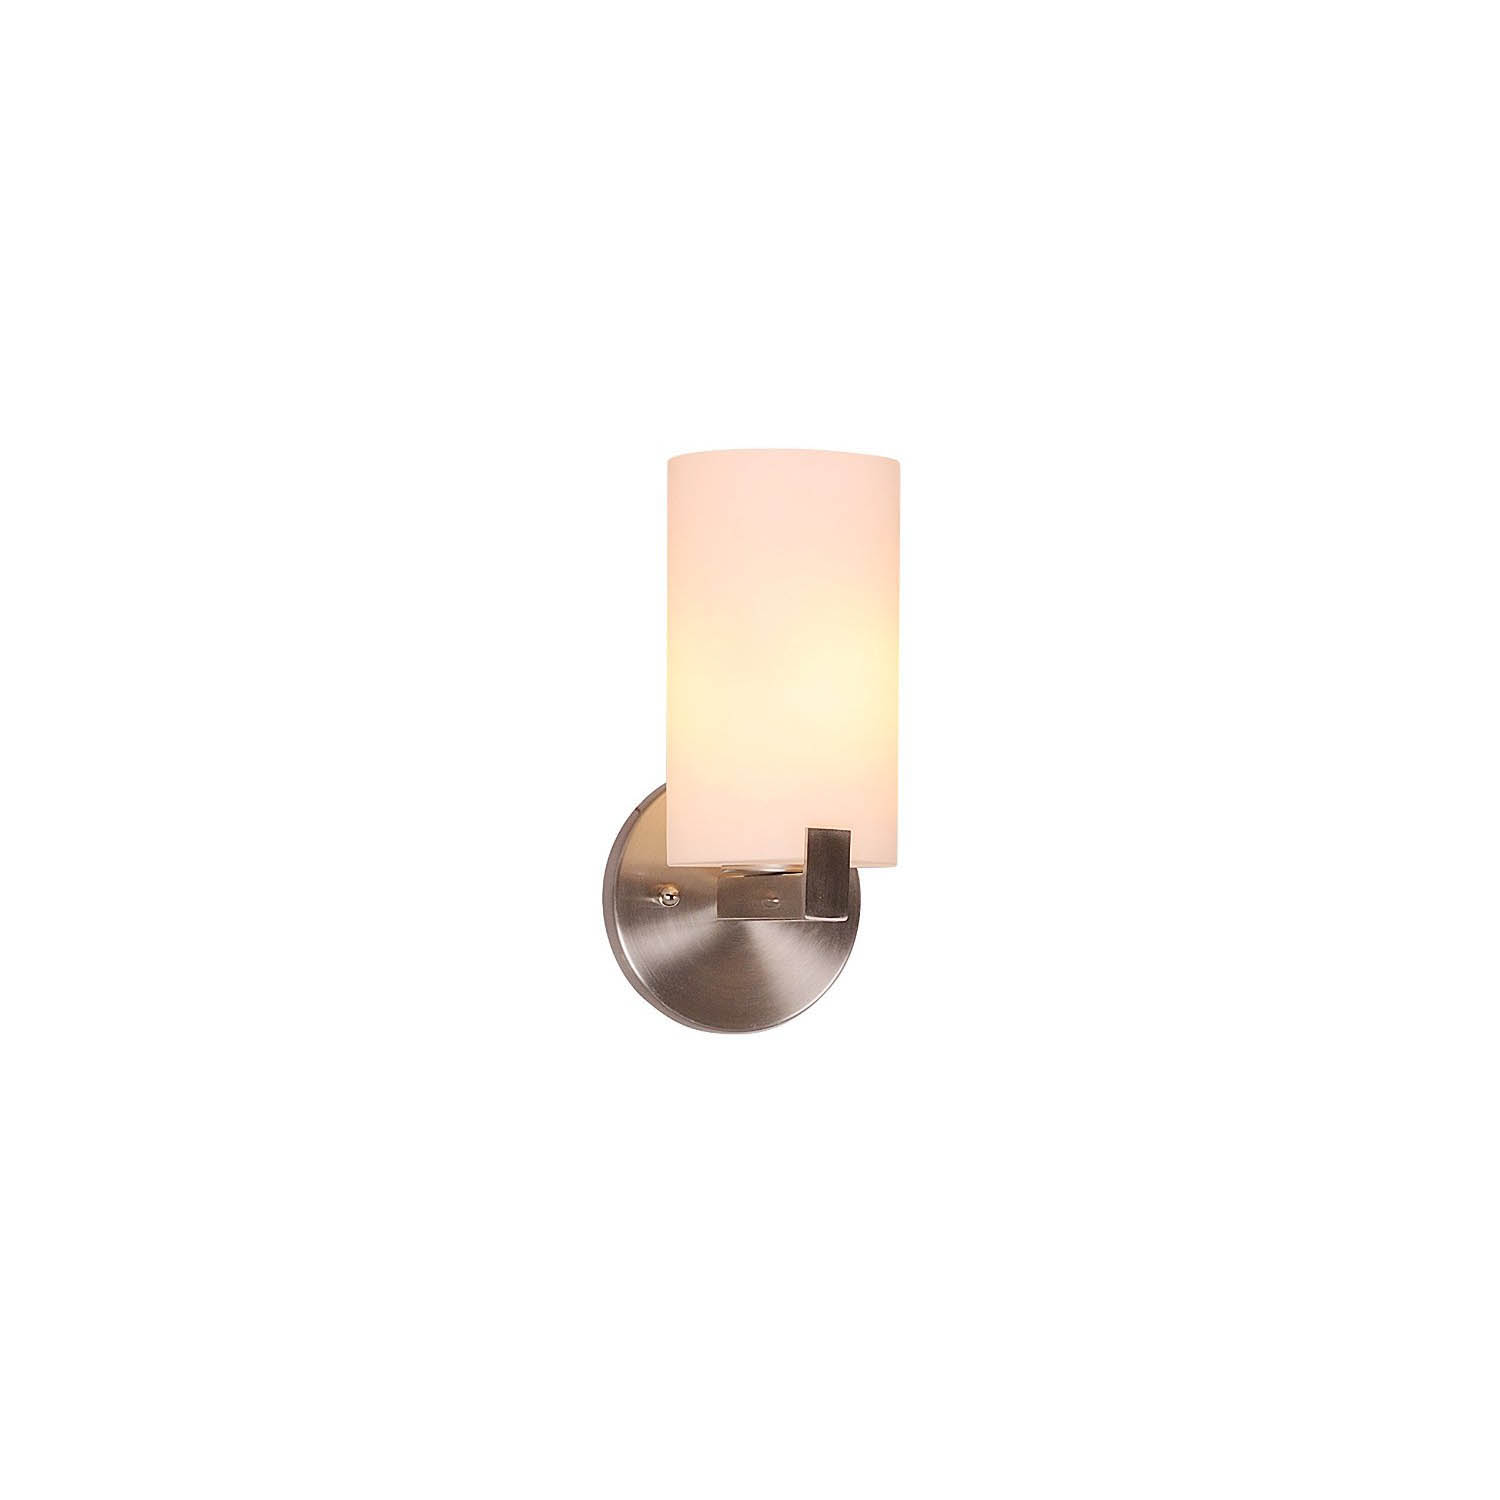 Design House Eastport 1 Light Indoor Wall Mount in Satin Nickel - 573154